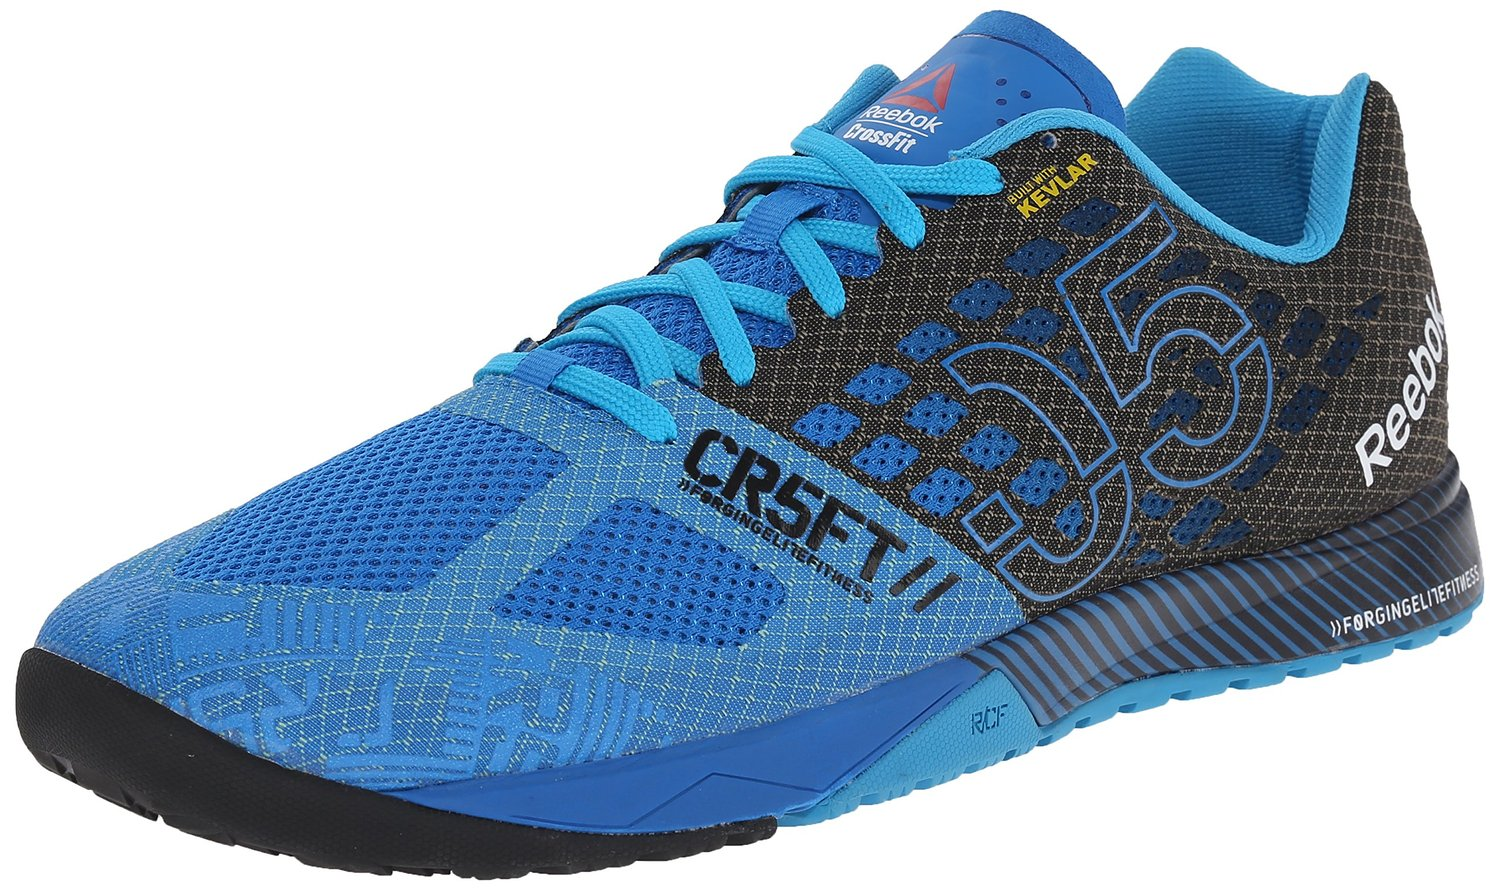 Best crossfit gear shoes Reebok Men's R Crossfit Nano 5.0